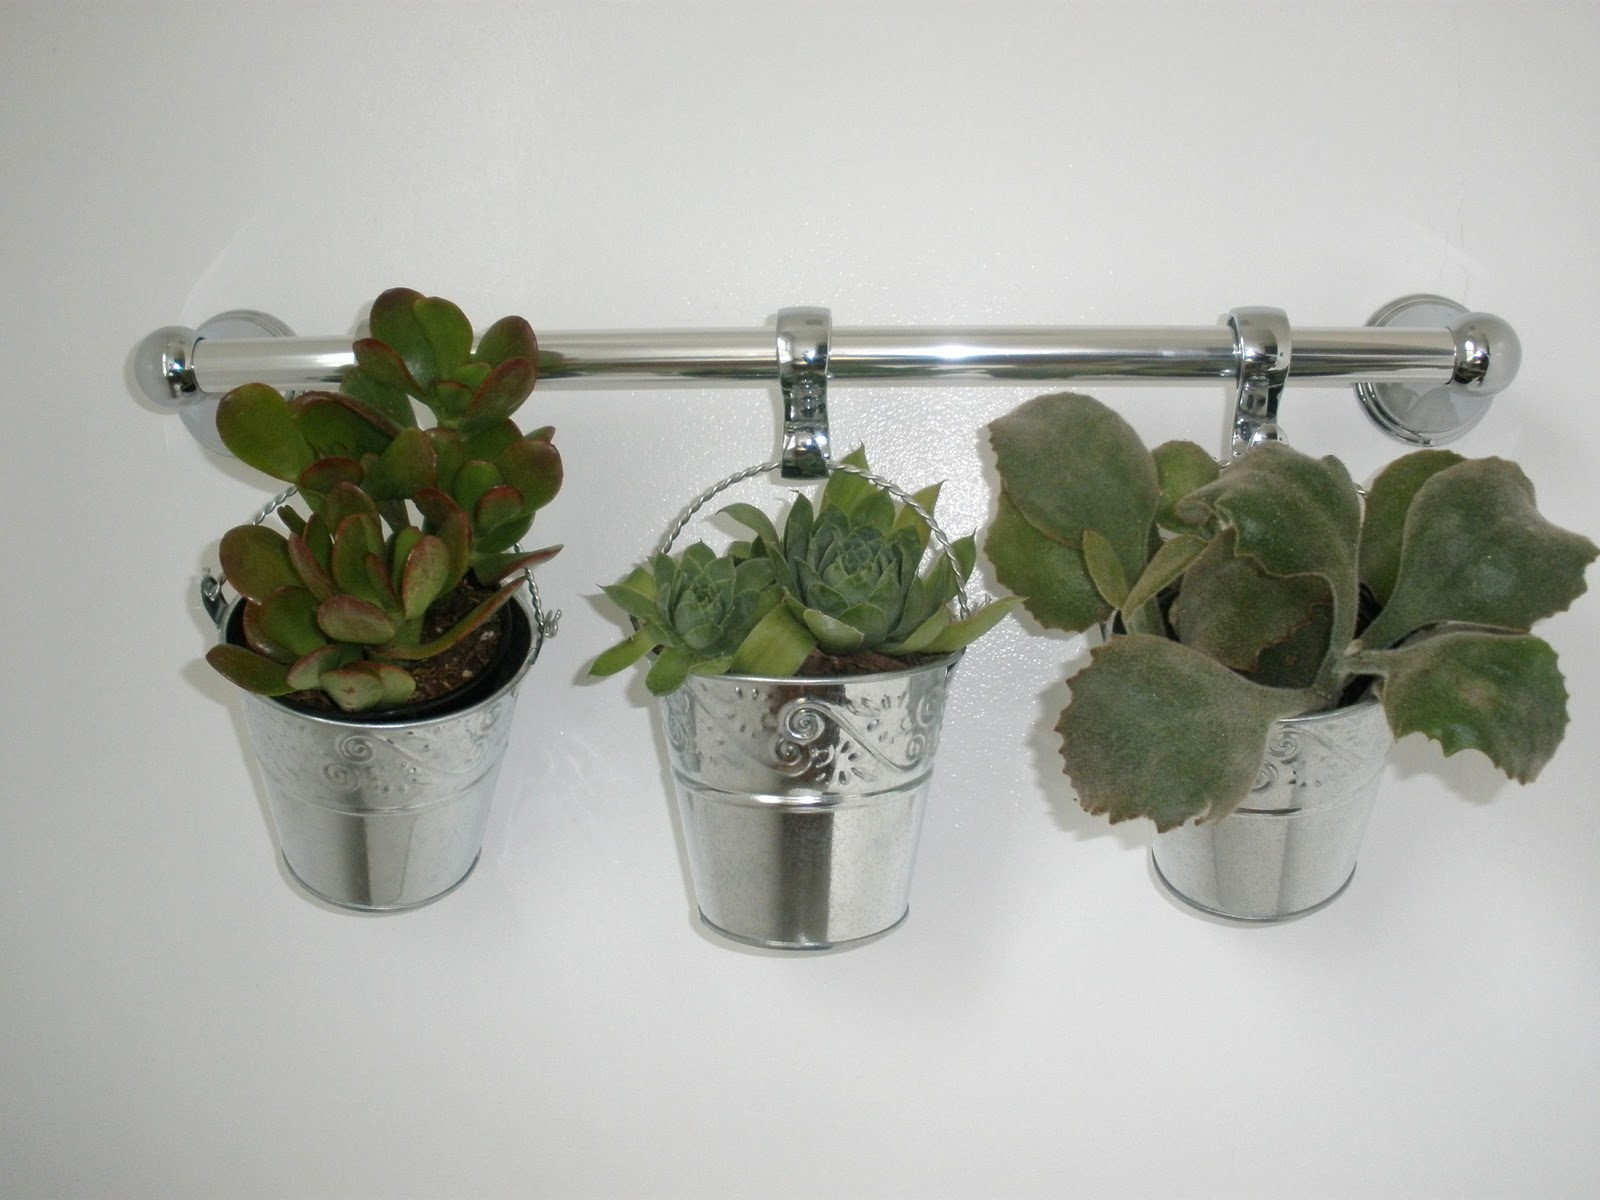 Giveaway new uses for bathroom hardware respaced portland - Houseplants for the bathroom ...